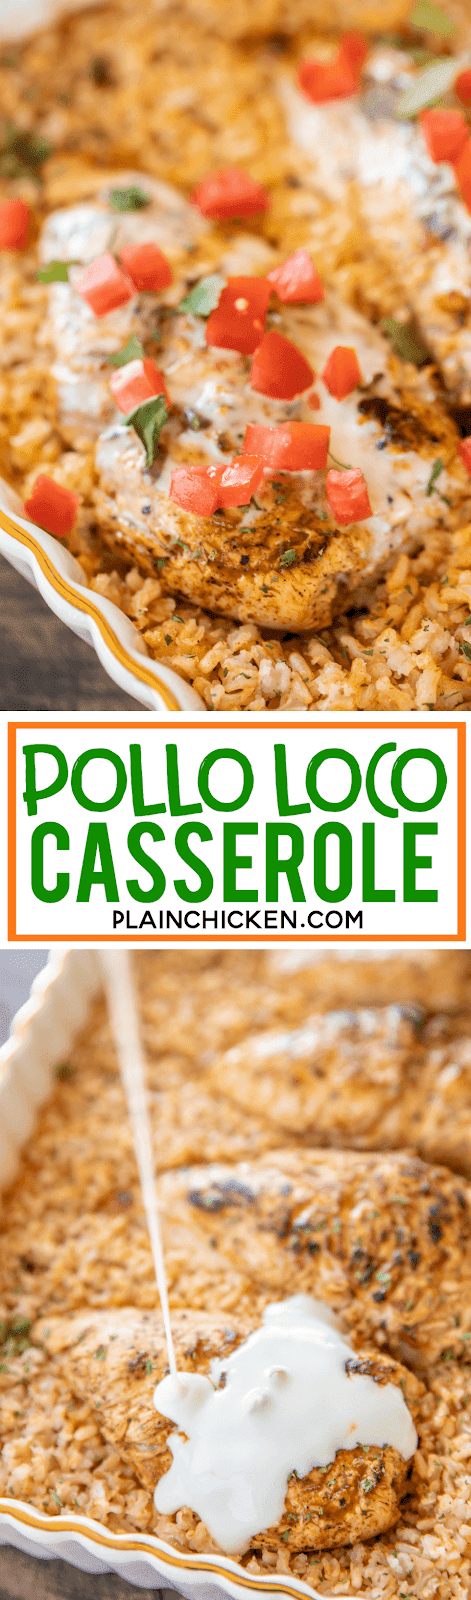 Pollo Loco Casserole - baked Mexican chicken and rice casserole. This is seriously the BEST!!! I've made this once a week for a month and can't get enough of it!!! Diced tomatoes and green chiles, cumin, chili powder, onion powder, garlic powder, chicken broth, instant brown rice, chicken breast, Lawry's Baja Chipotle marinade and white cheese dip. I wanted to lick my plate this was so good! Ready to eat in about 30 minutes! #casserole #chicken #mexican